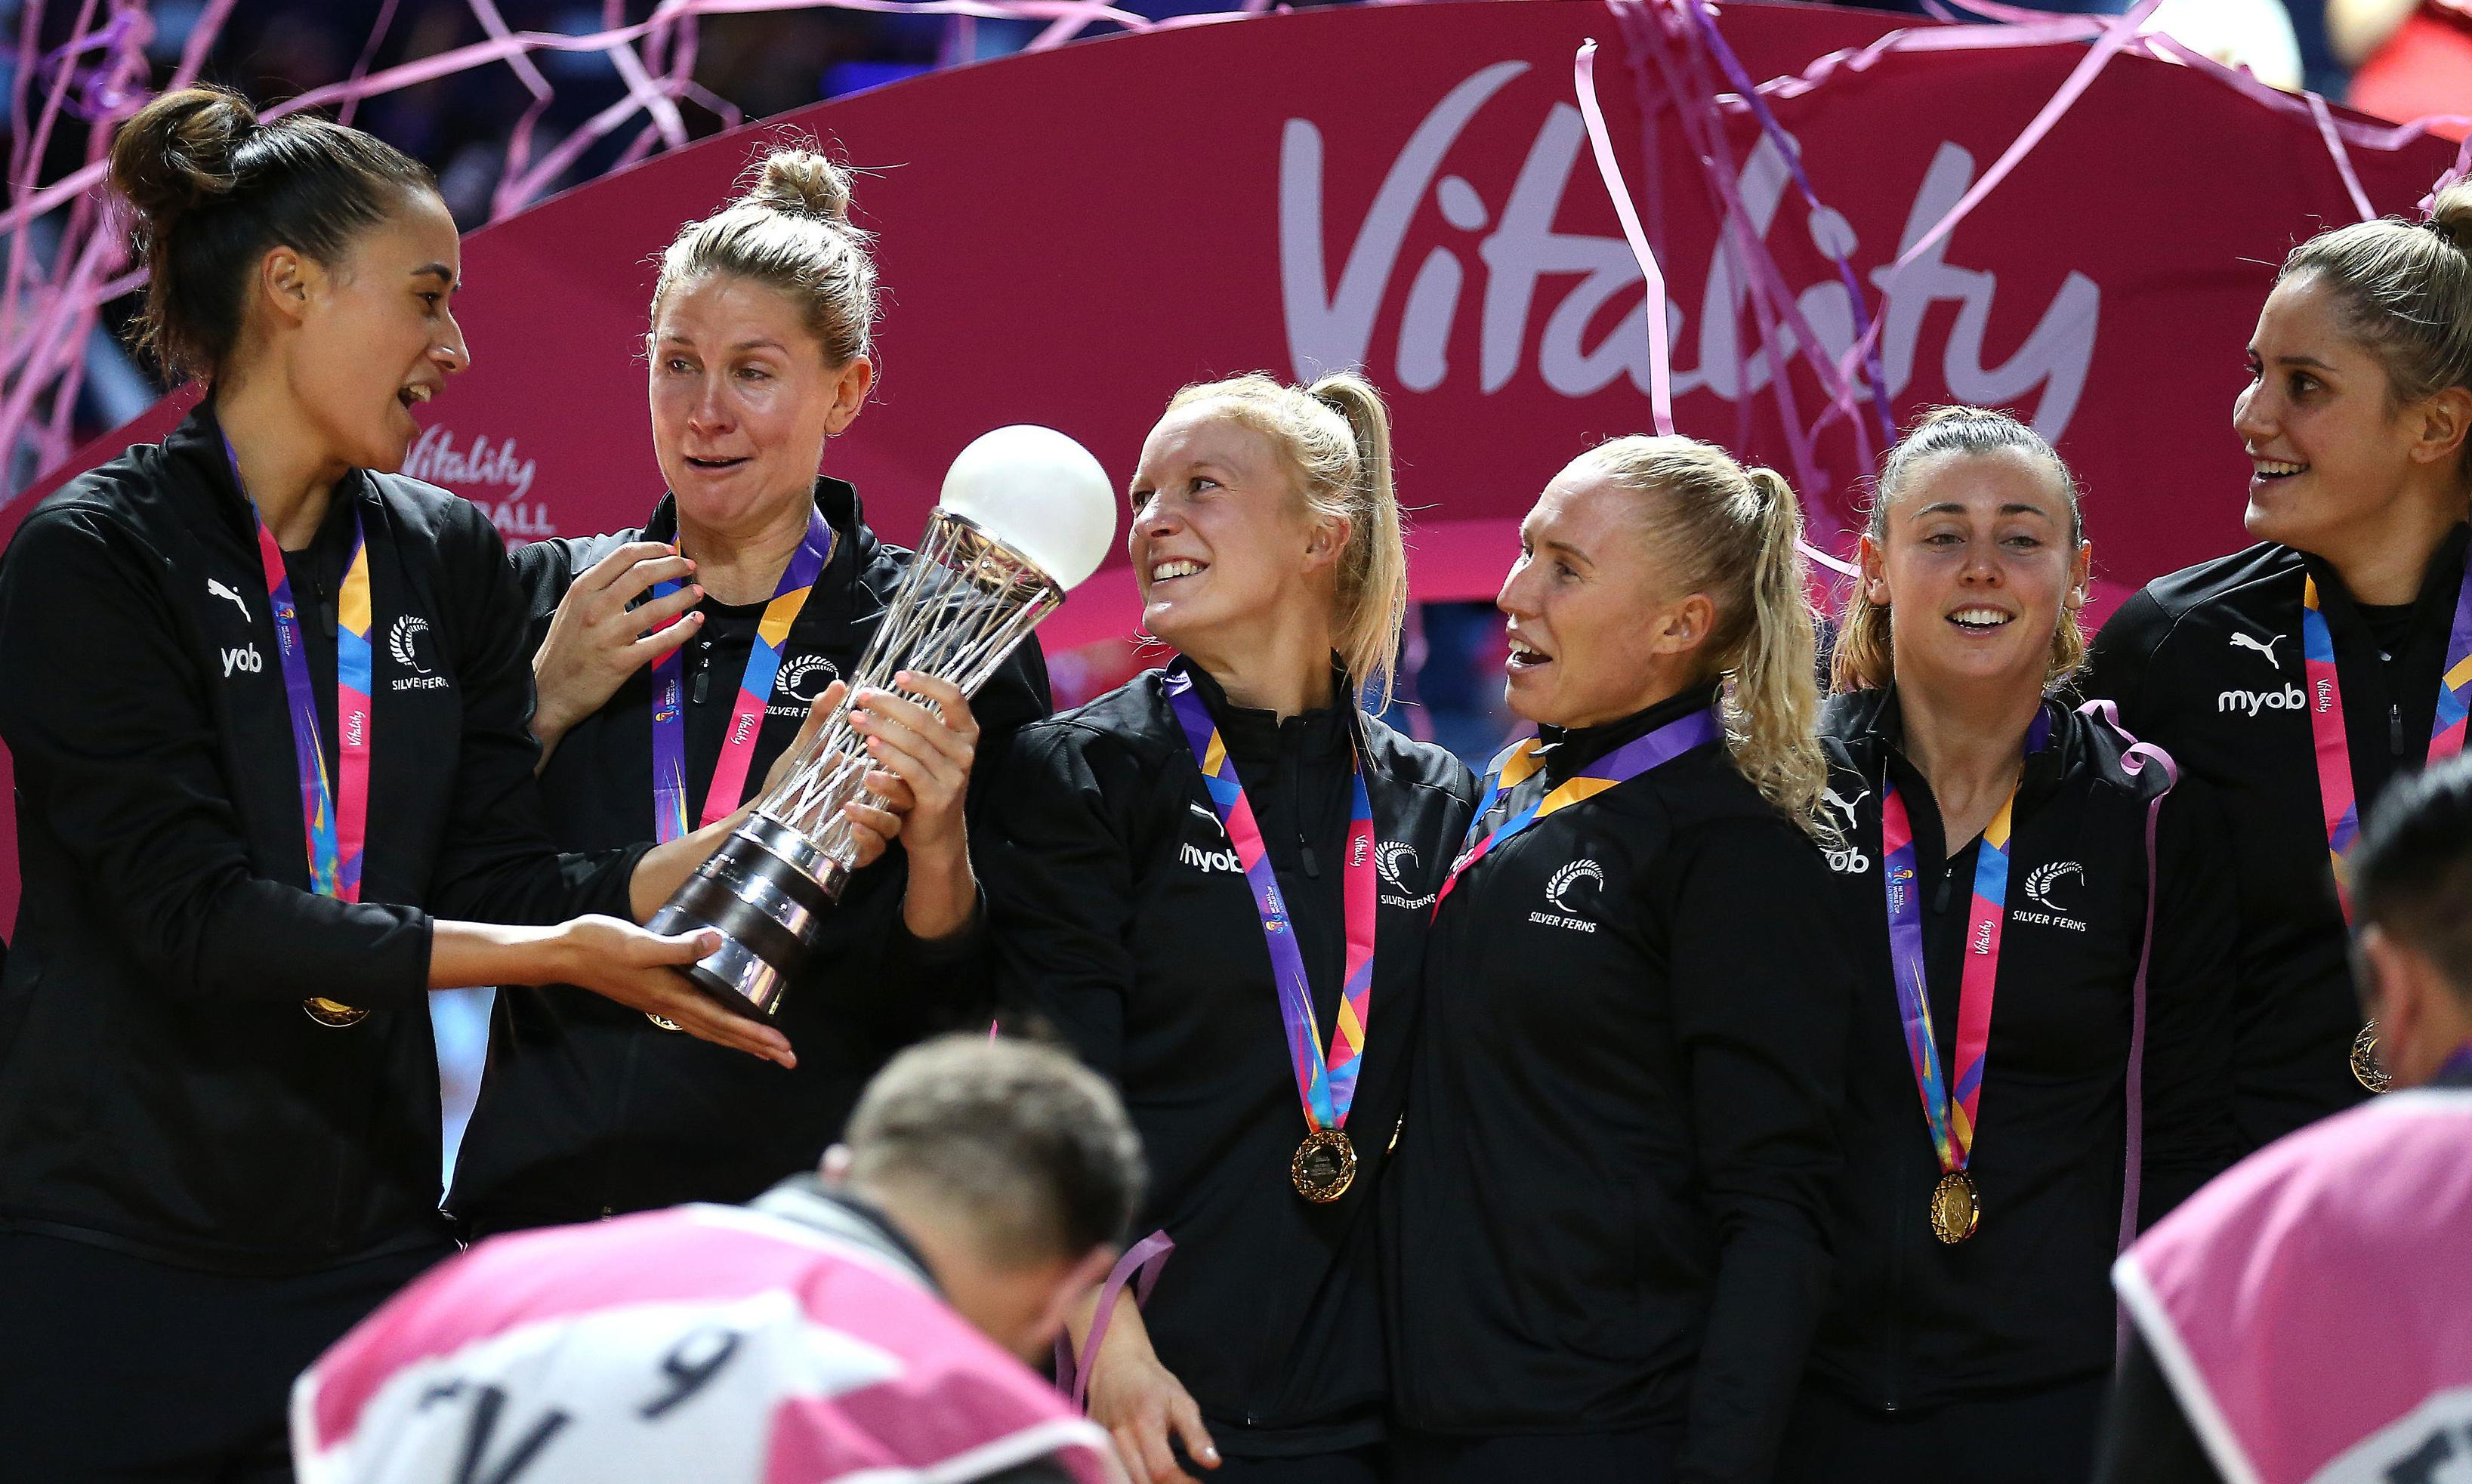 New Zealand end 16-year wait to beat Australia in Netball World Cup final